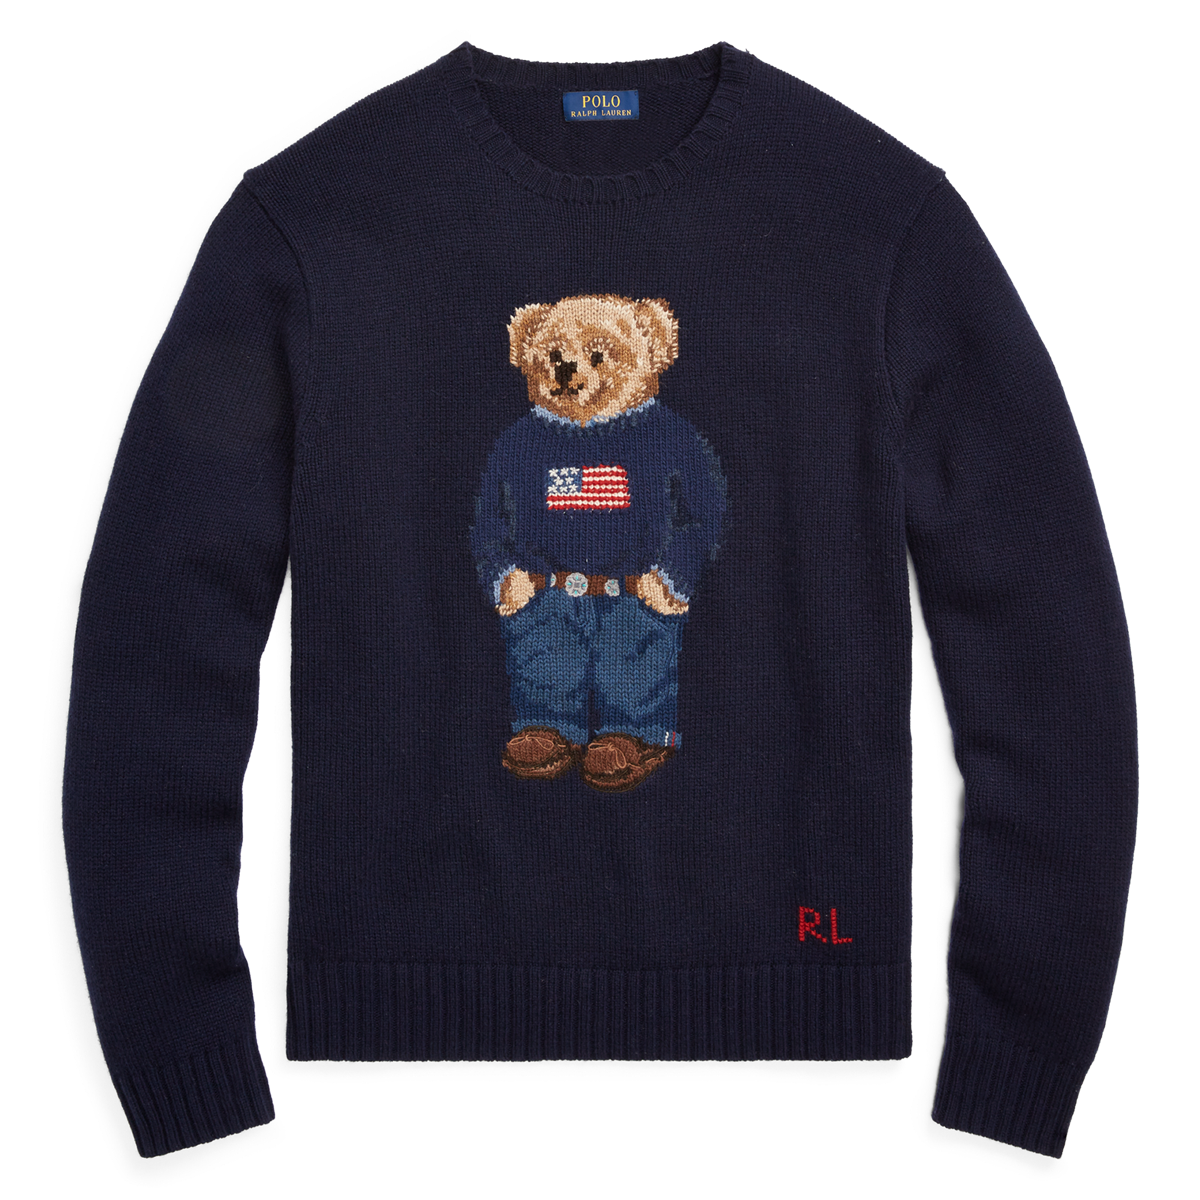 6ca46766165f9 The Iconic Polo Bear Sweater